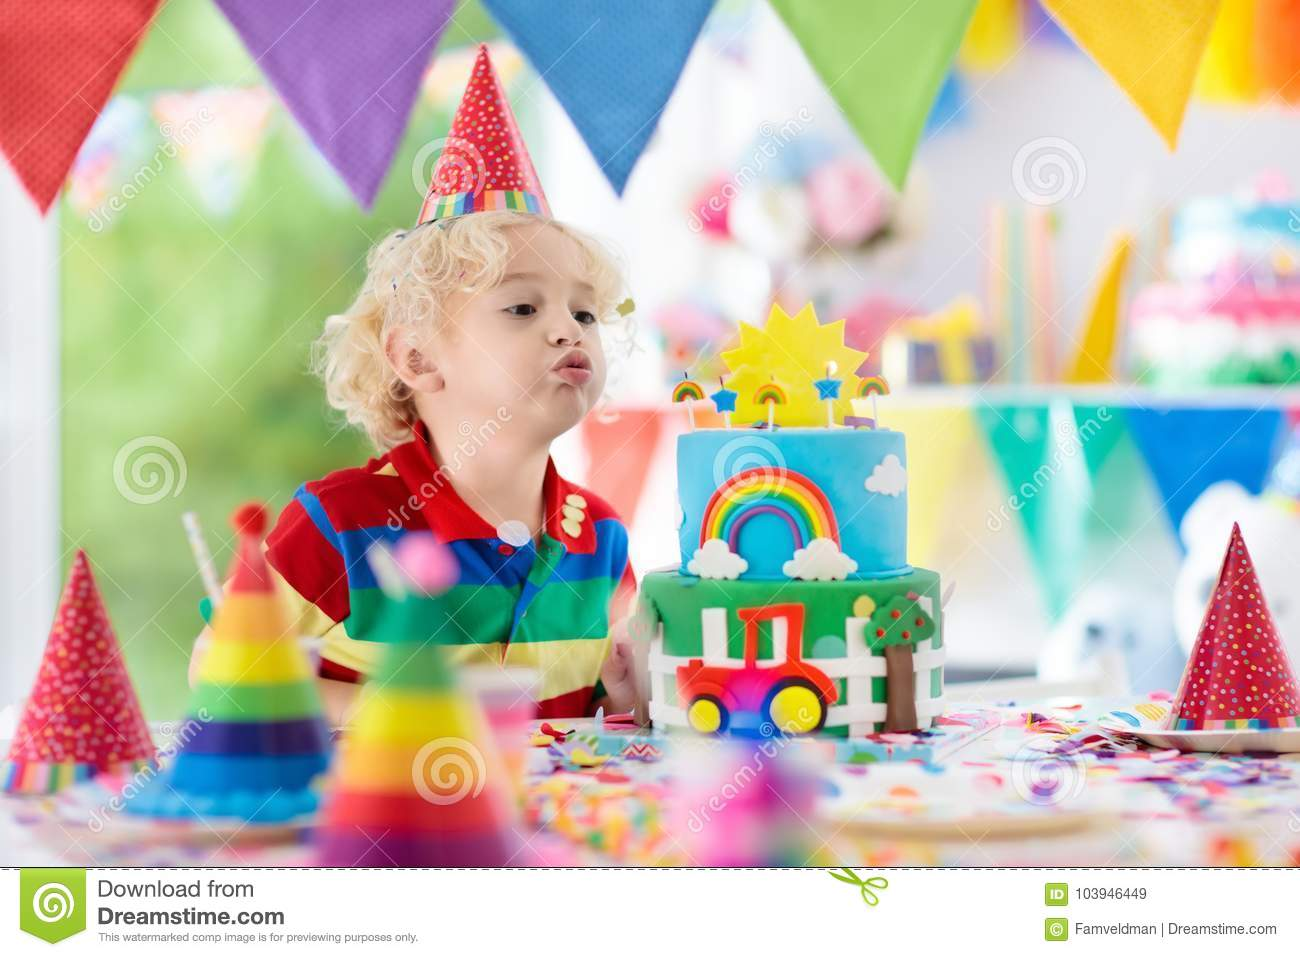 Kids Birthday Party Child Blowing Out Cake Candle Stock Image Image Of Candy Holiday 103946449